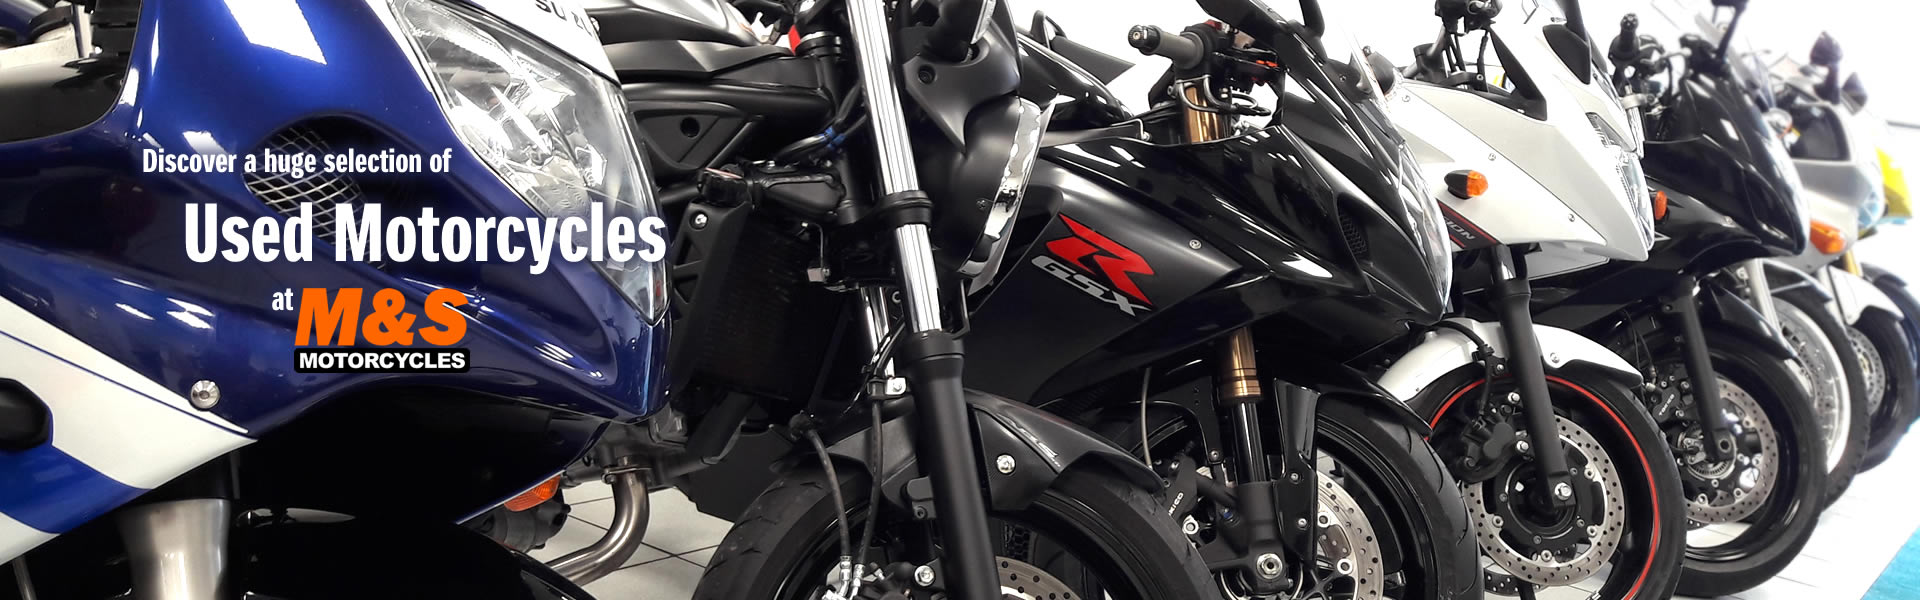 New and used motorcycles for sale | M&S Motorcycles Newcastle